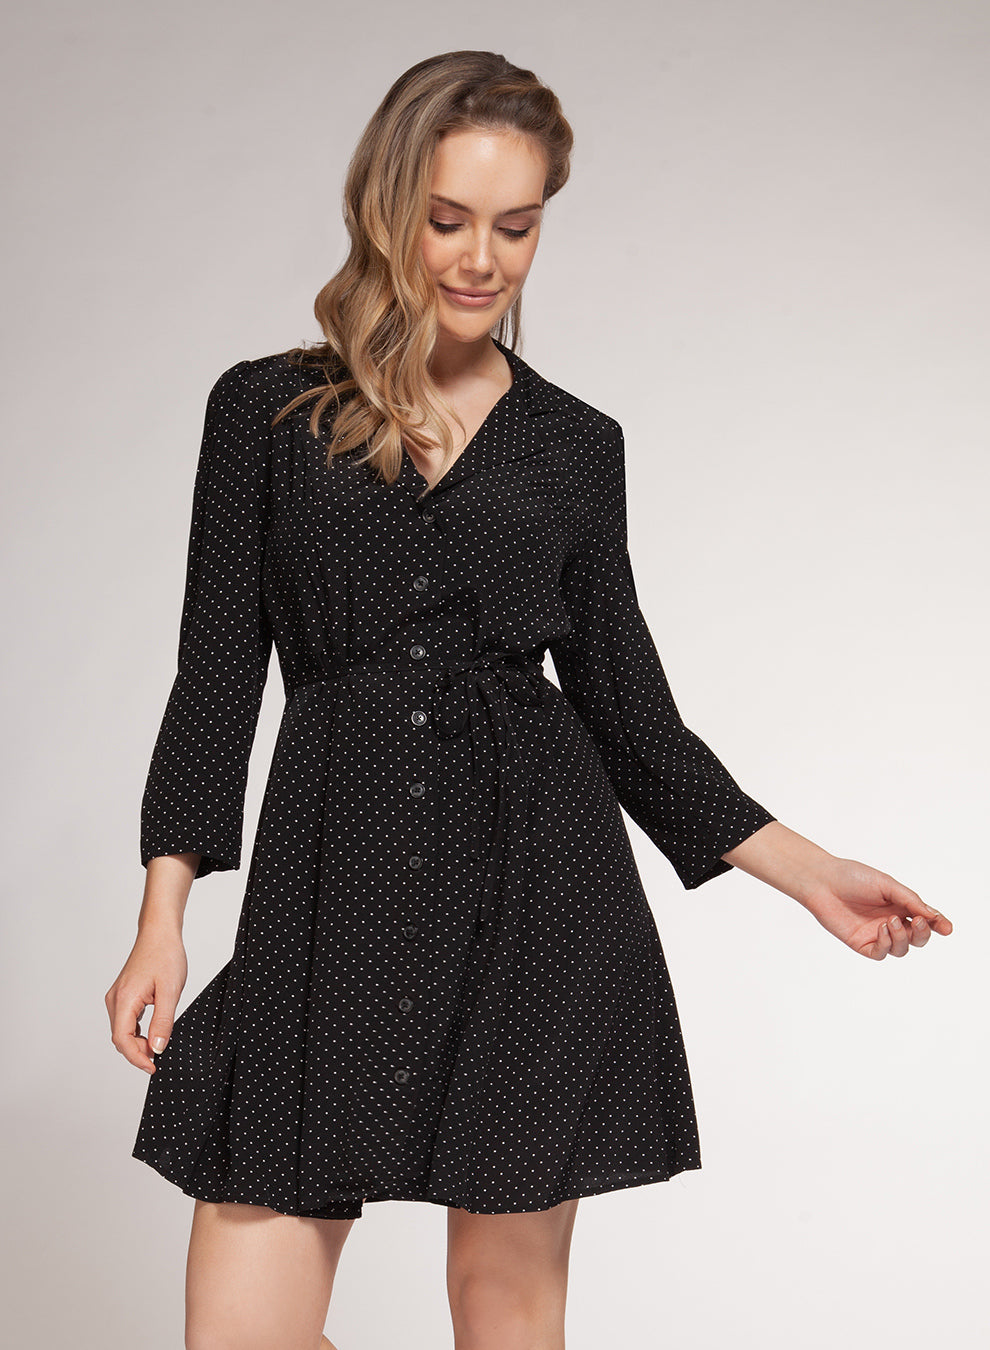 DEX CLOTHING LADIES BLACK DOT PRINT DRESS WITH BUTTONS